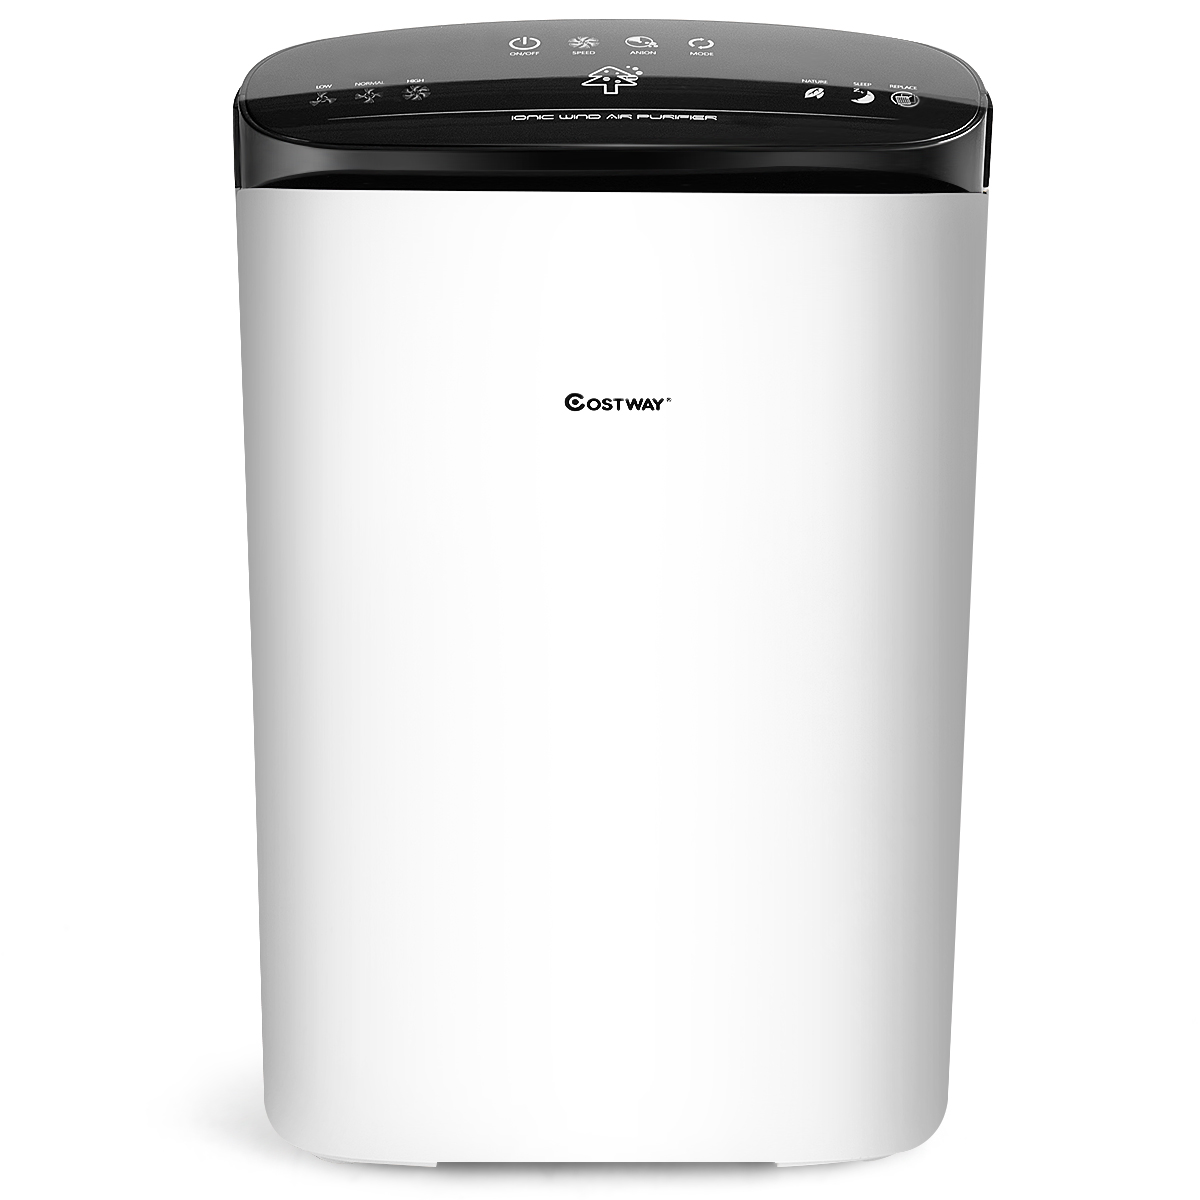 Powerful-Air-Purifier-Cleaner-HEPA-Filter-to-Remove-Odor-Dust-Mold-Smoke thumbnail 2